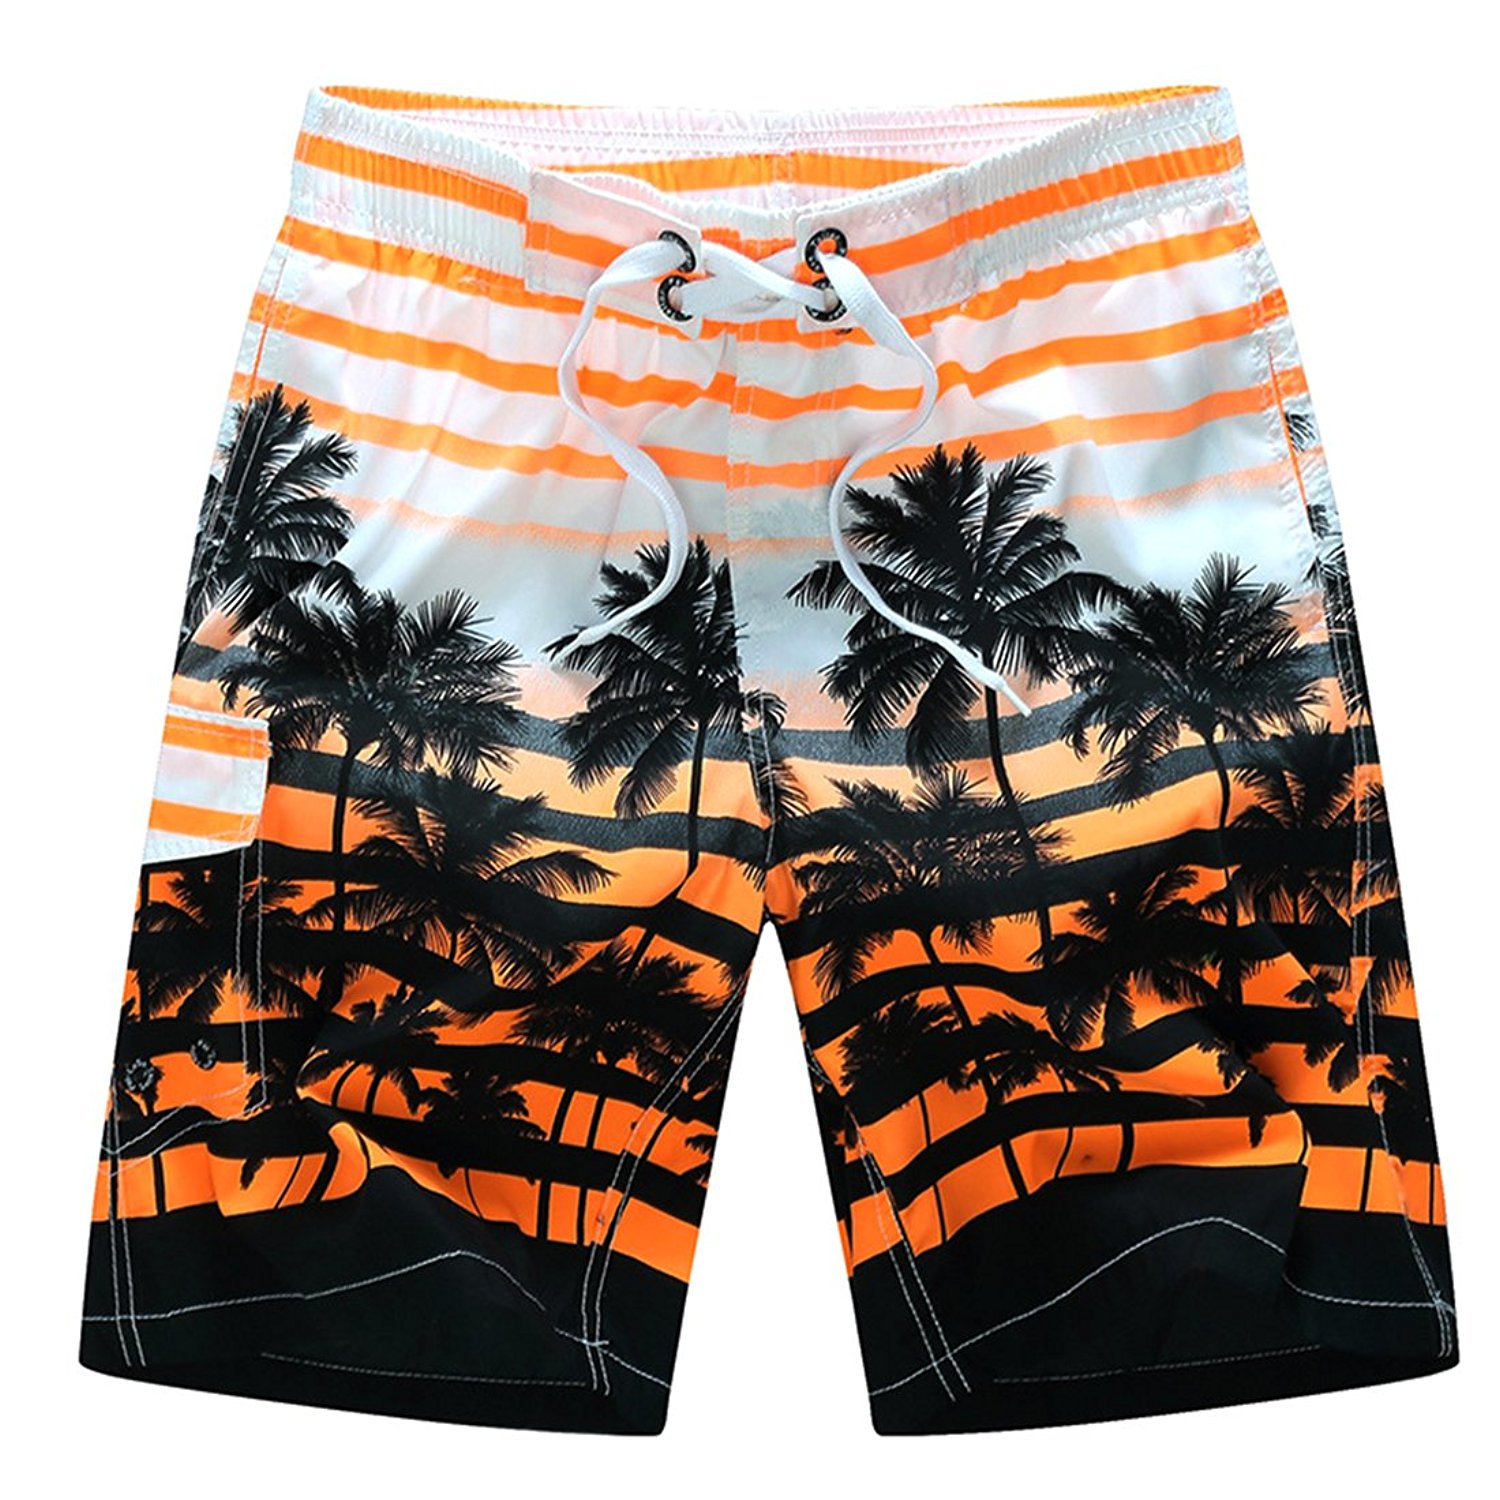 72c1242dfe90f Comeon Summer Shorts,Men Quick Dry Swim Trunks Cargo Water Shorts With Mesh  Lining Casual